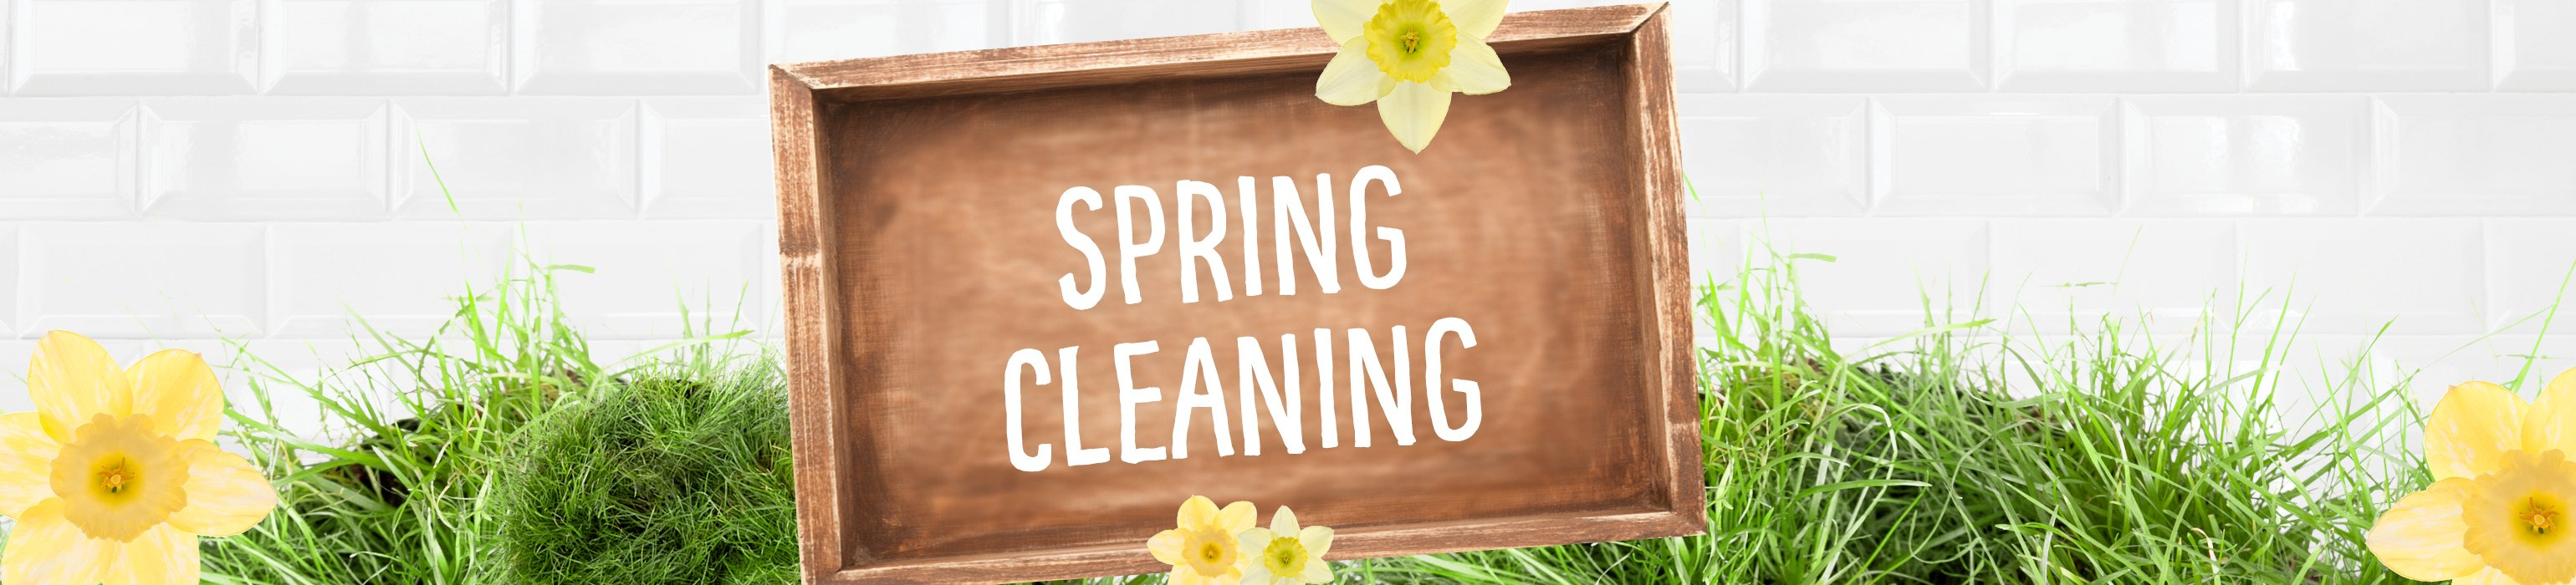 Spring Cleaning Savings on now